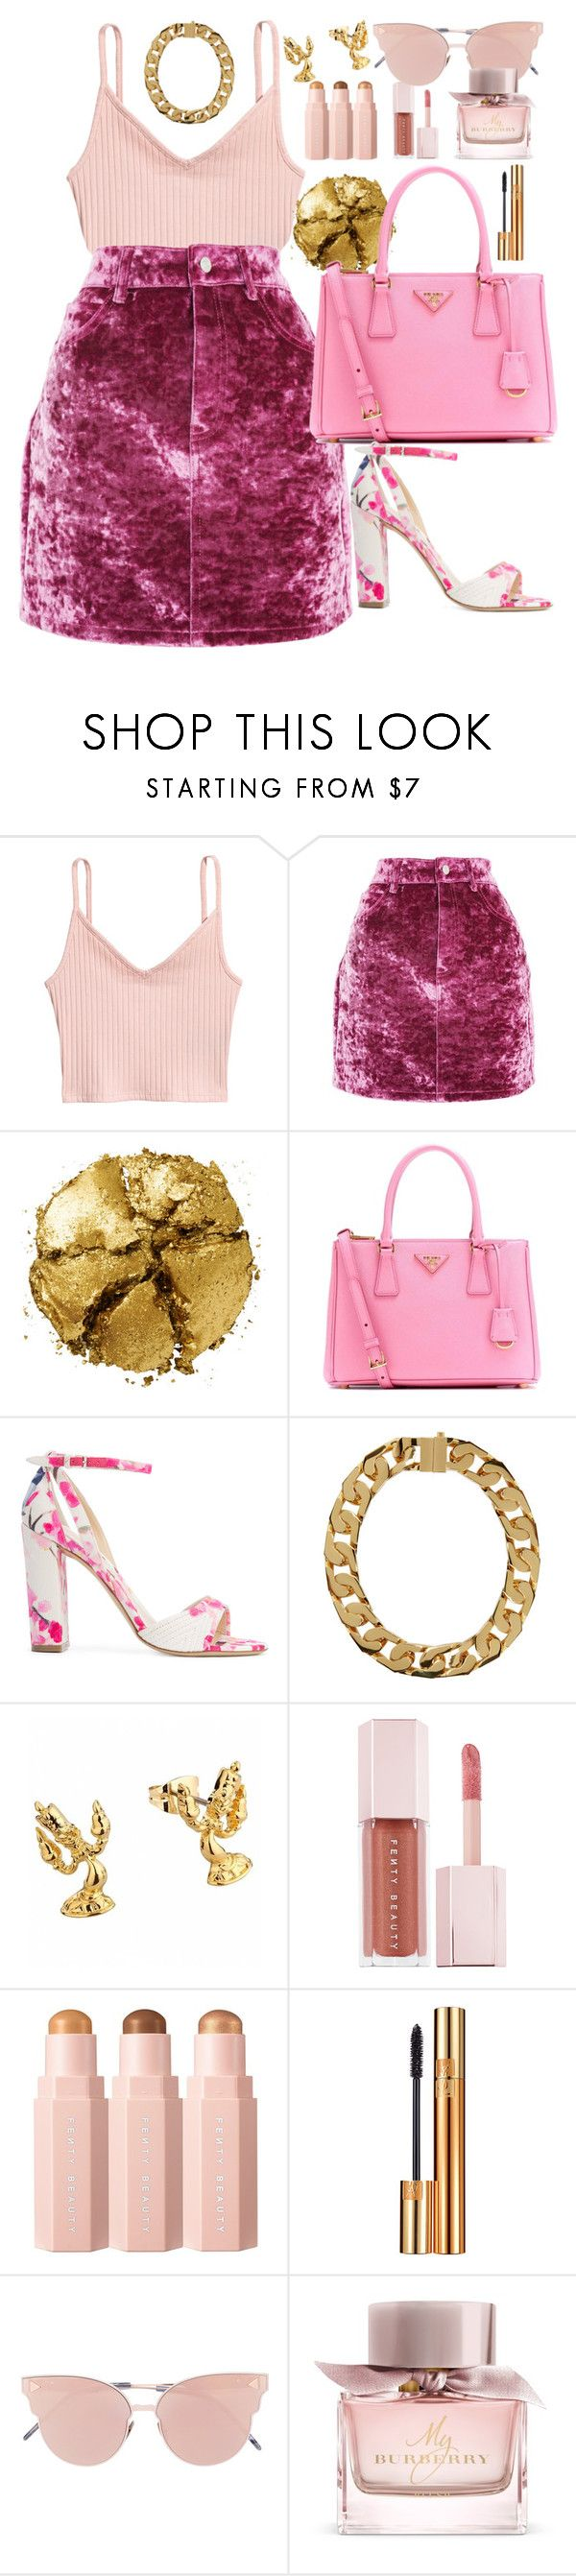 """Pink"" by matousadiya on Polyvore featuring Topshop, Pat McGrath, Prada, Monique Lhuillier, AMBUSH, Lumière, Puma, Yves Saint Laurent, So.Ya and Burberry"